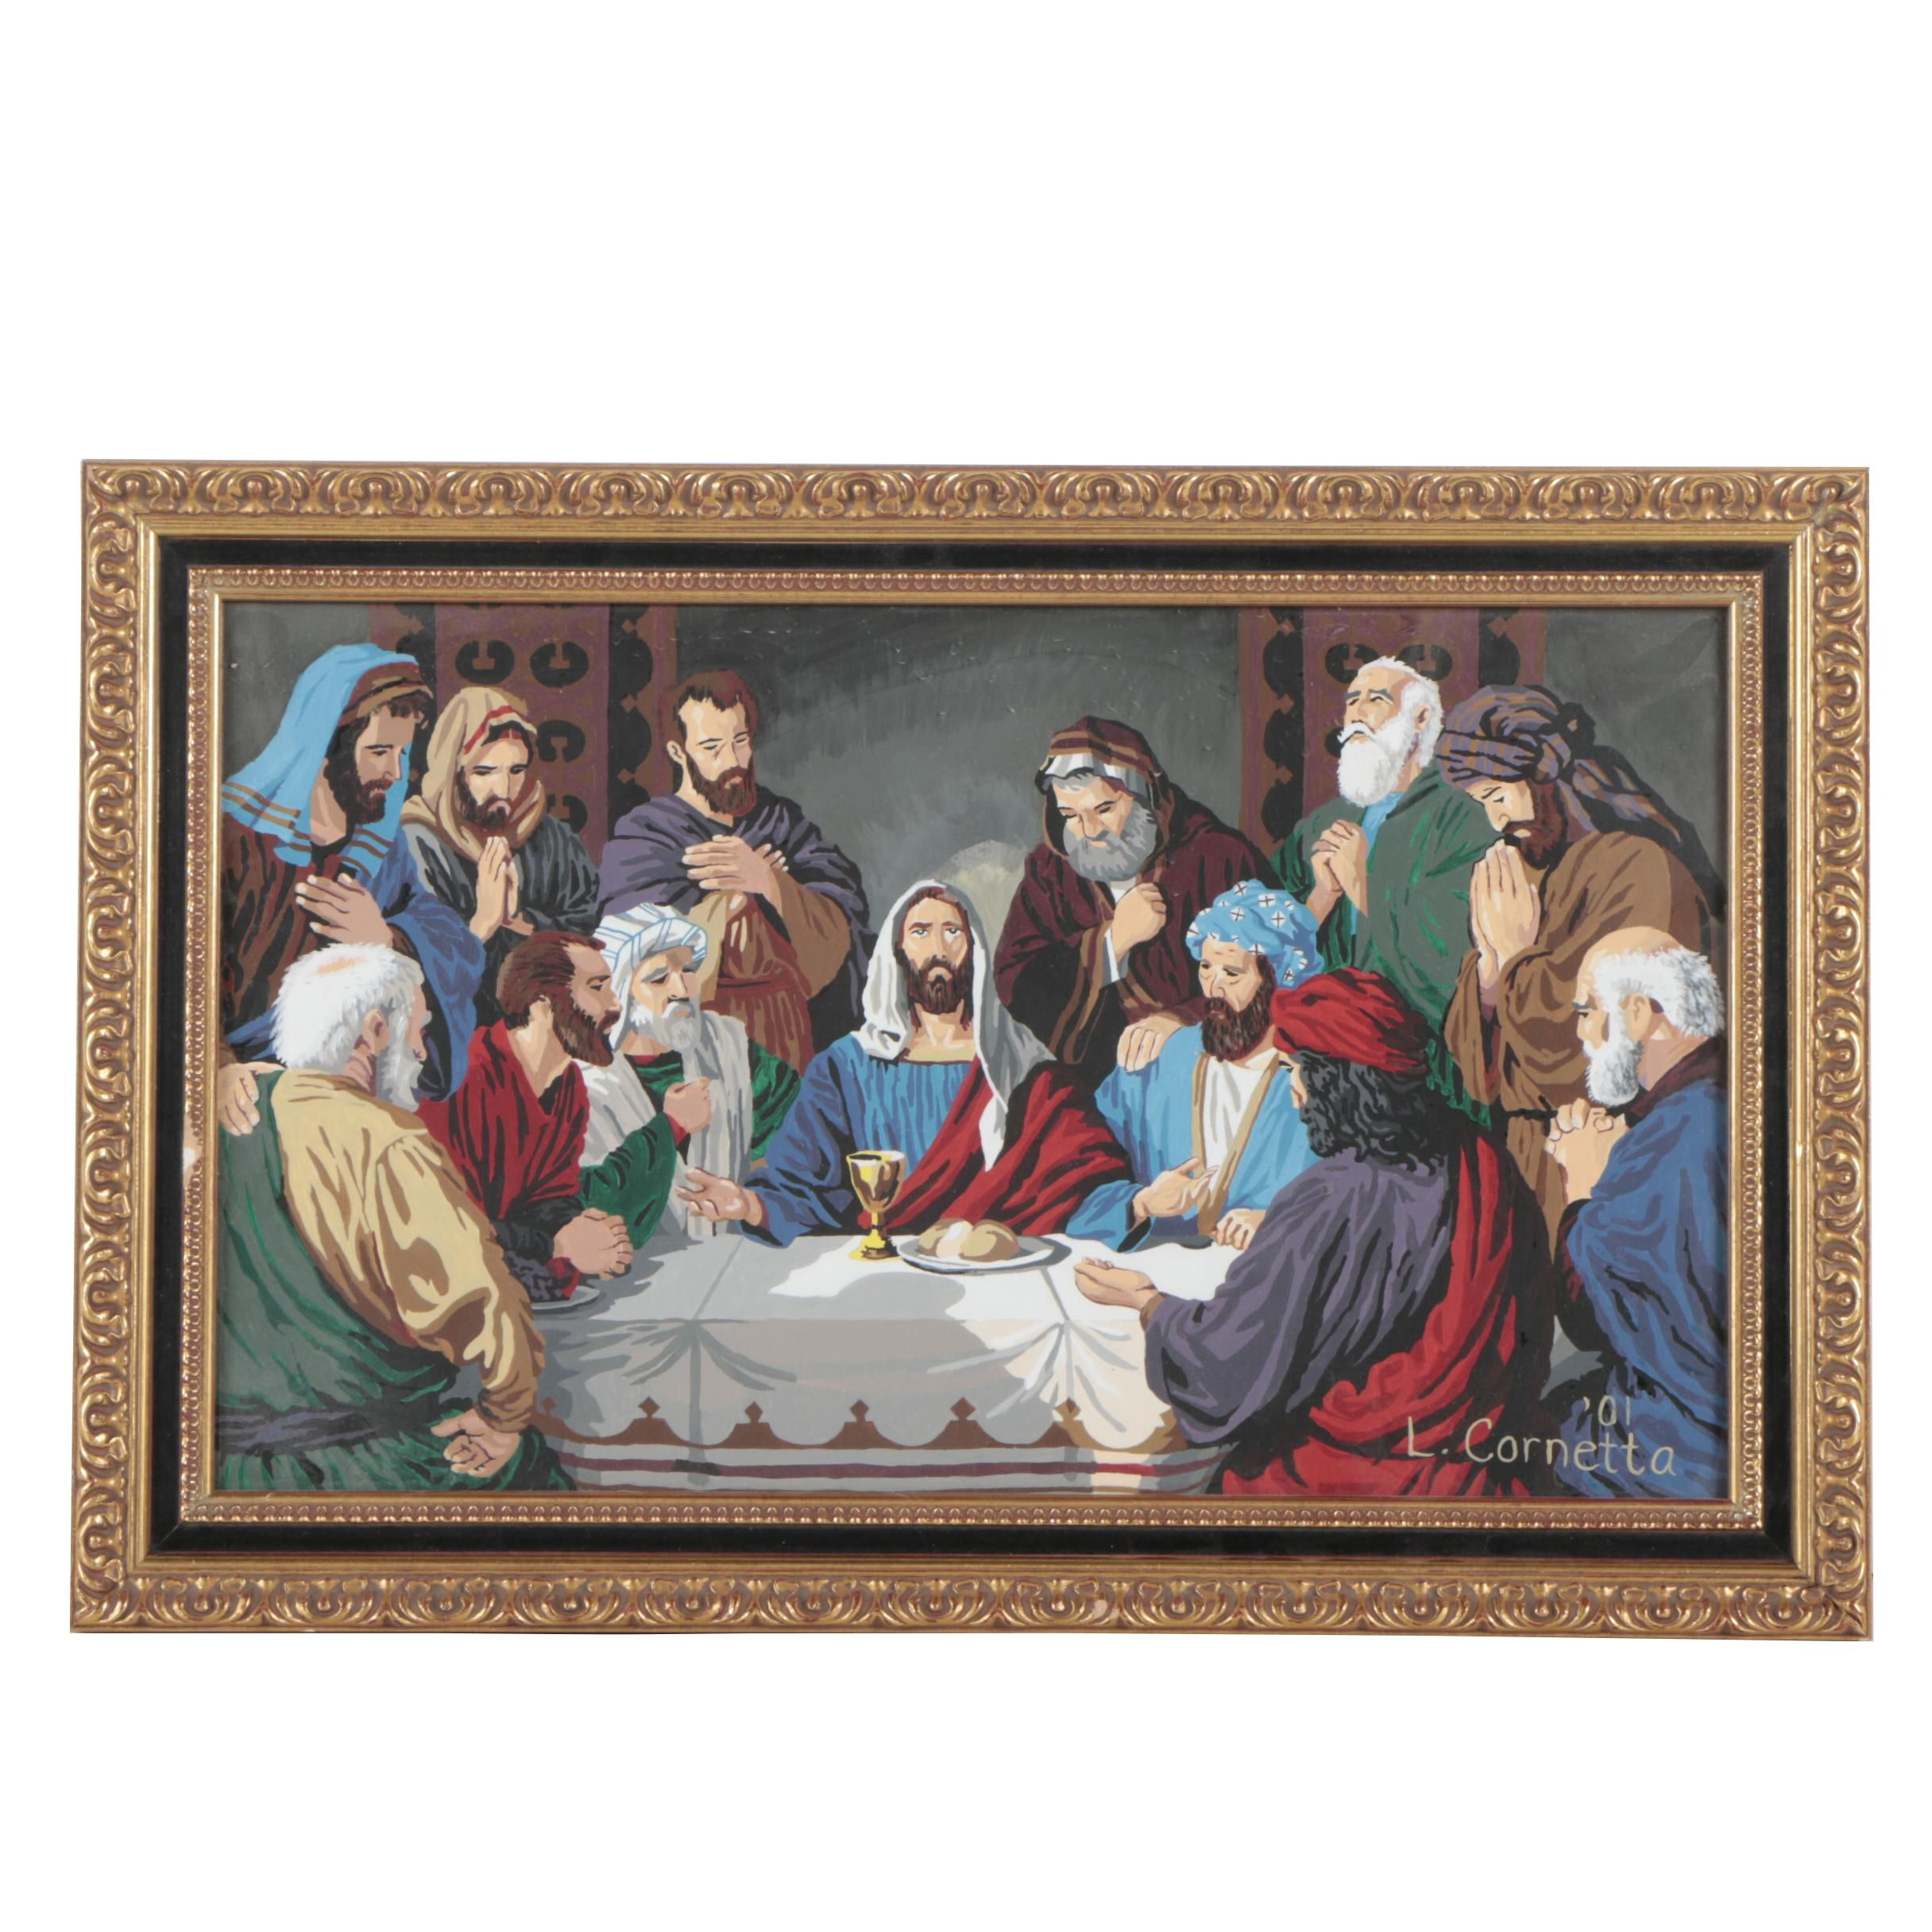 L. Cornetta Last Supper Gouache Painting